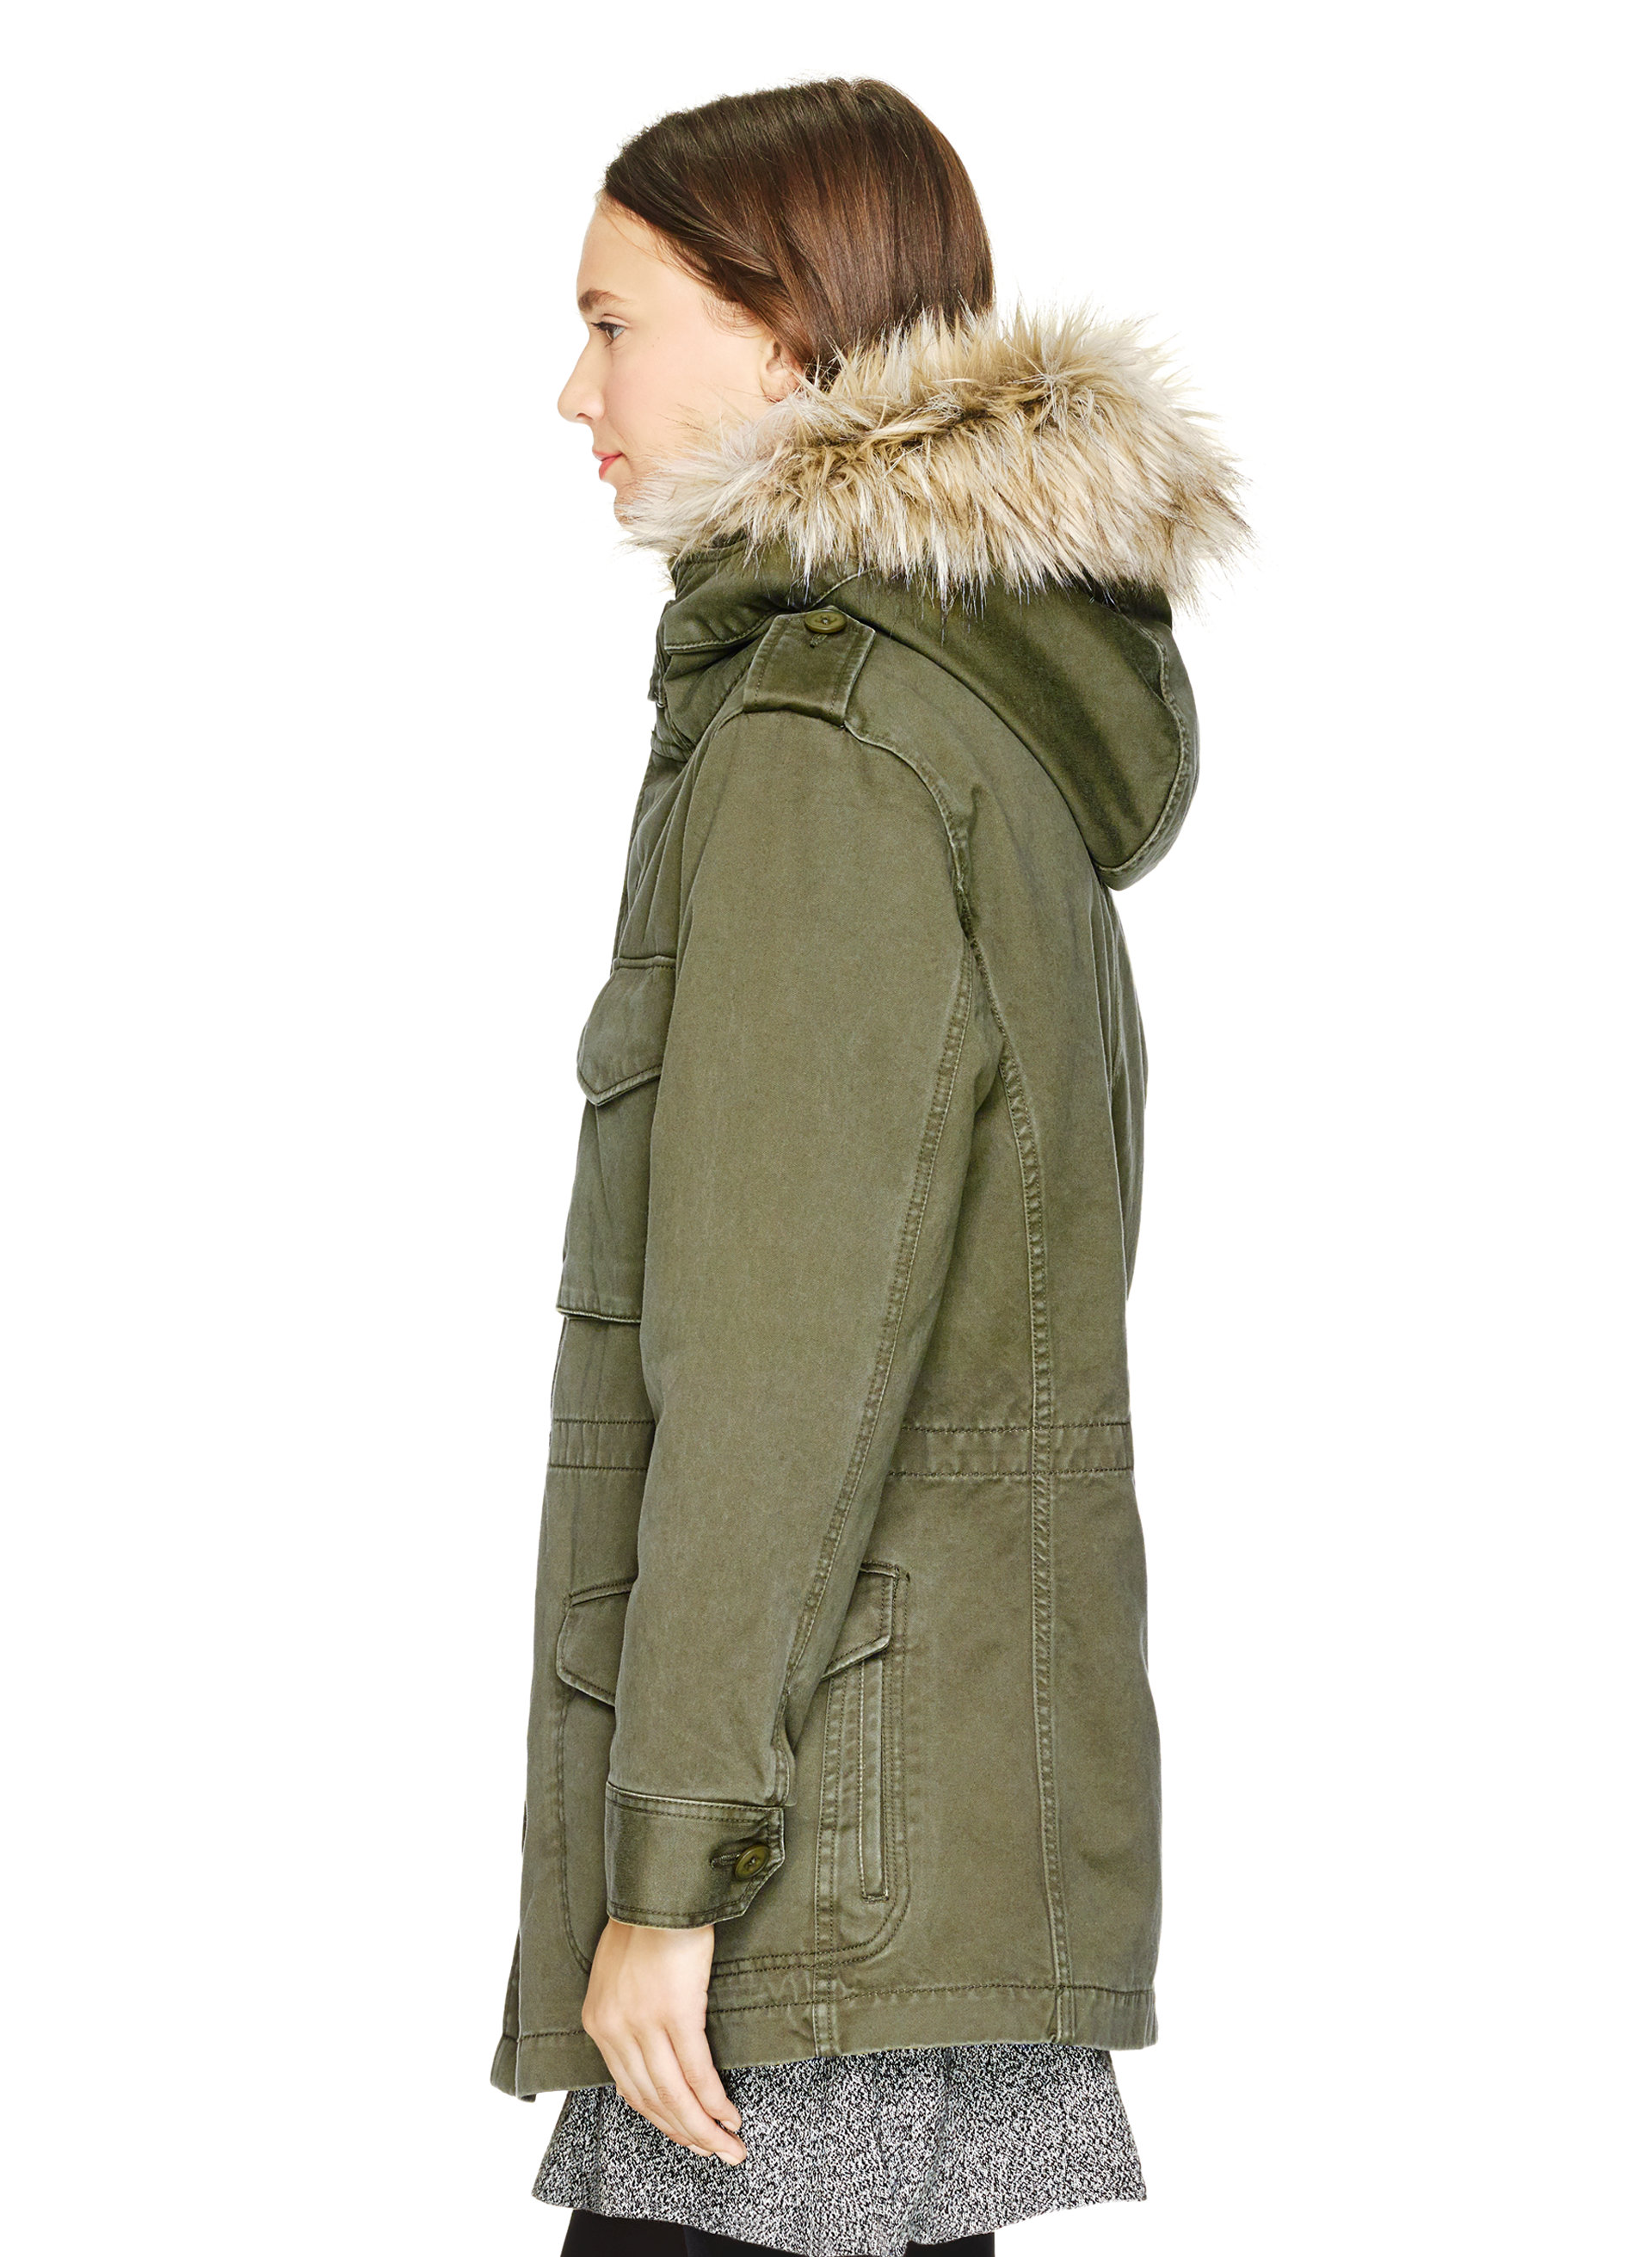 Aritzia green jacket with leather sleeves